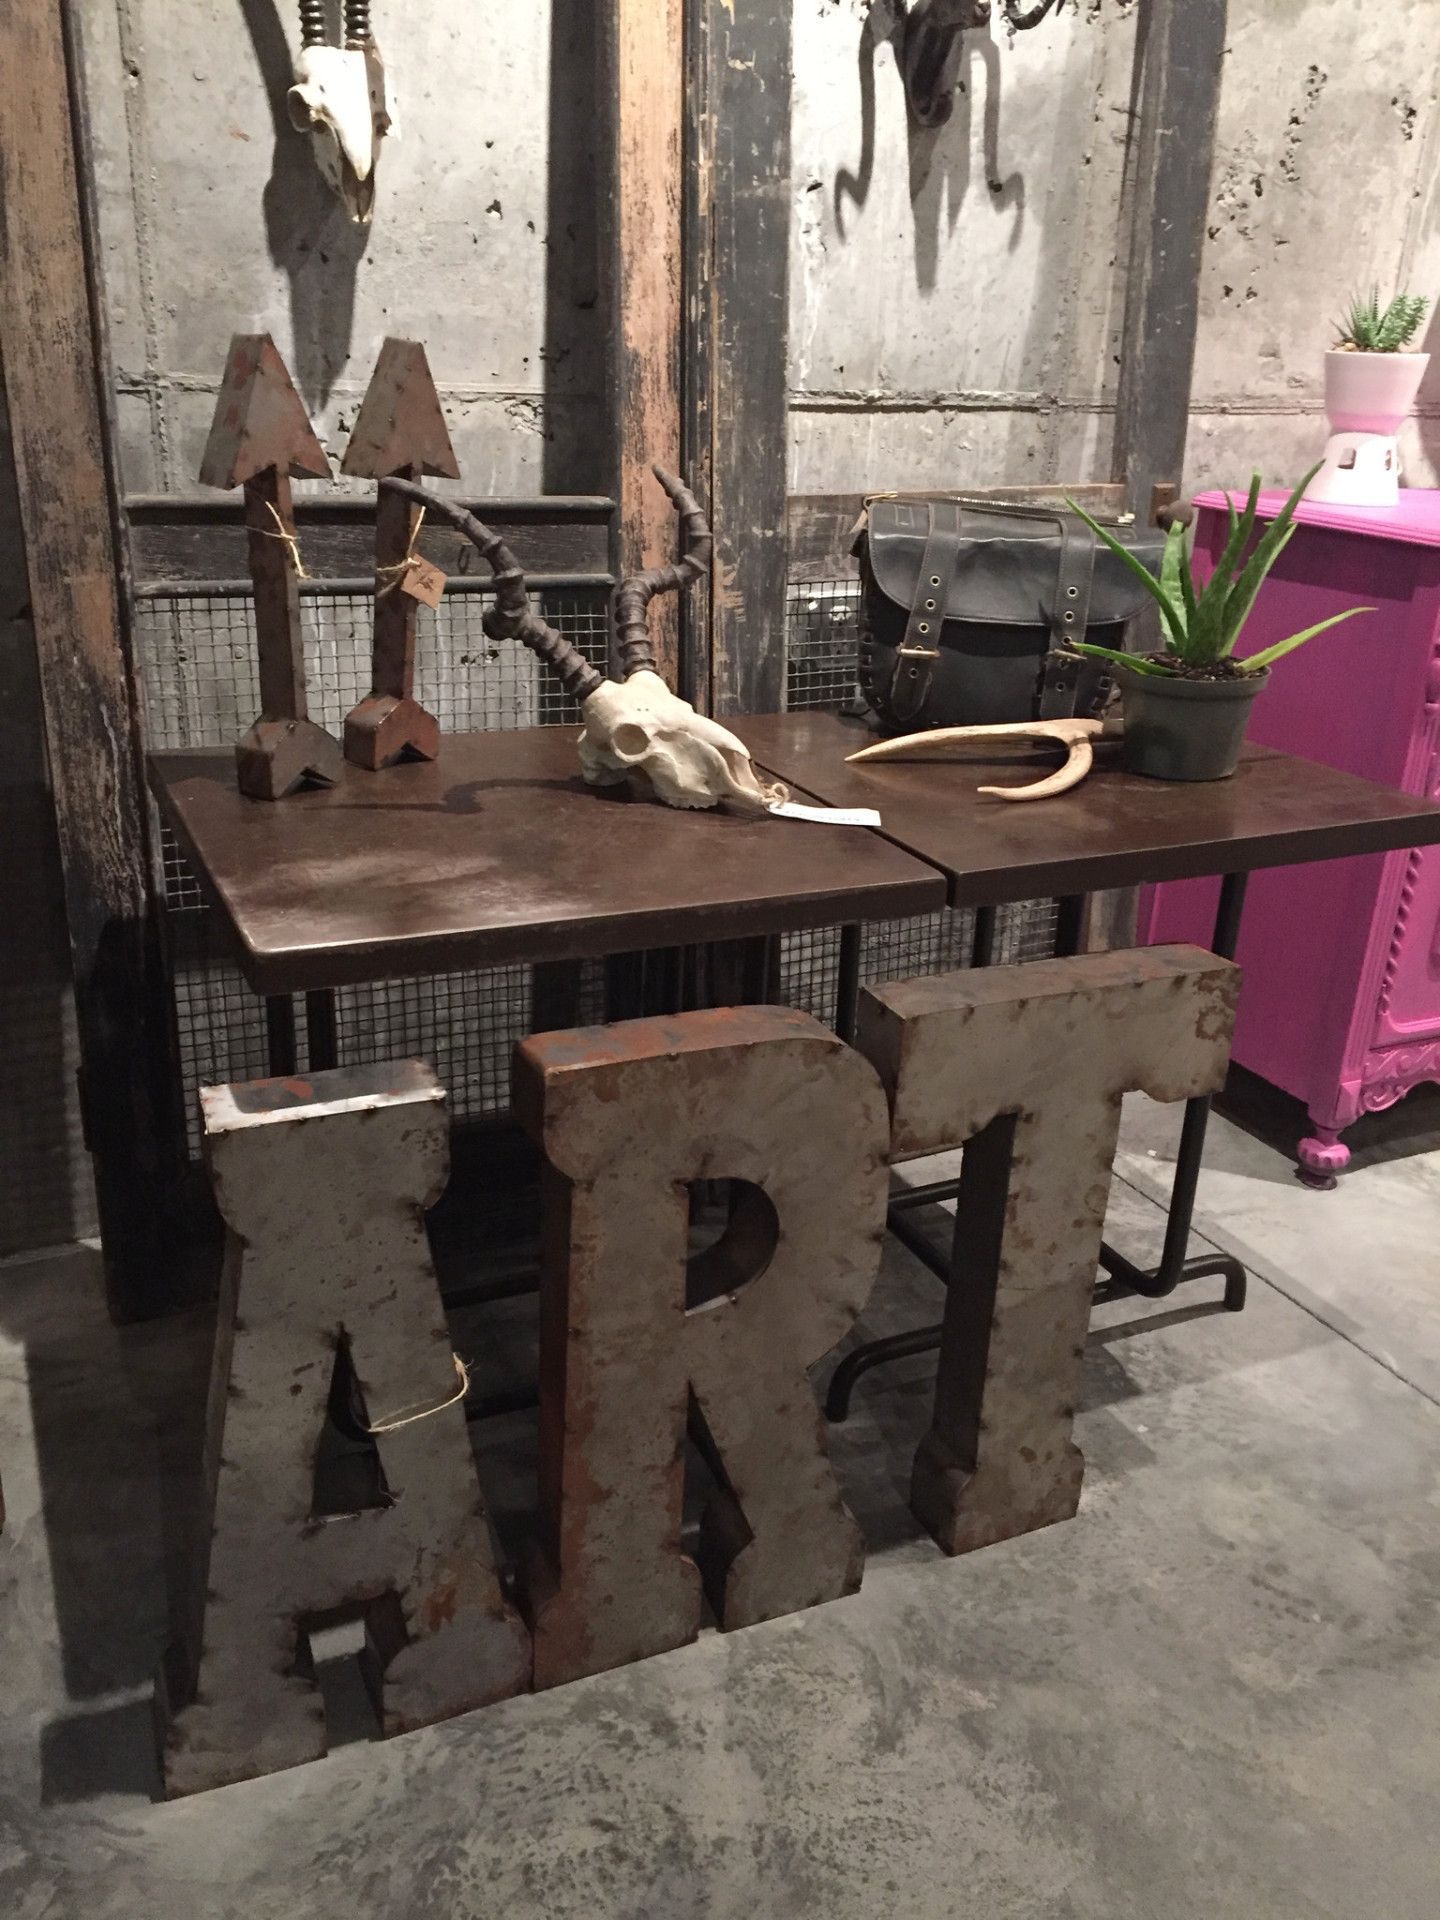 ART RUSTIC METAL LETTERS, Eclectic home, ART, words, wall decor